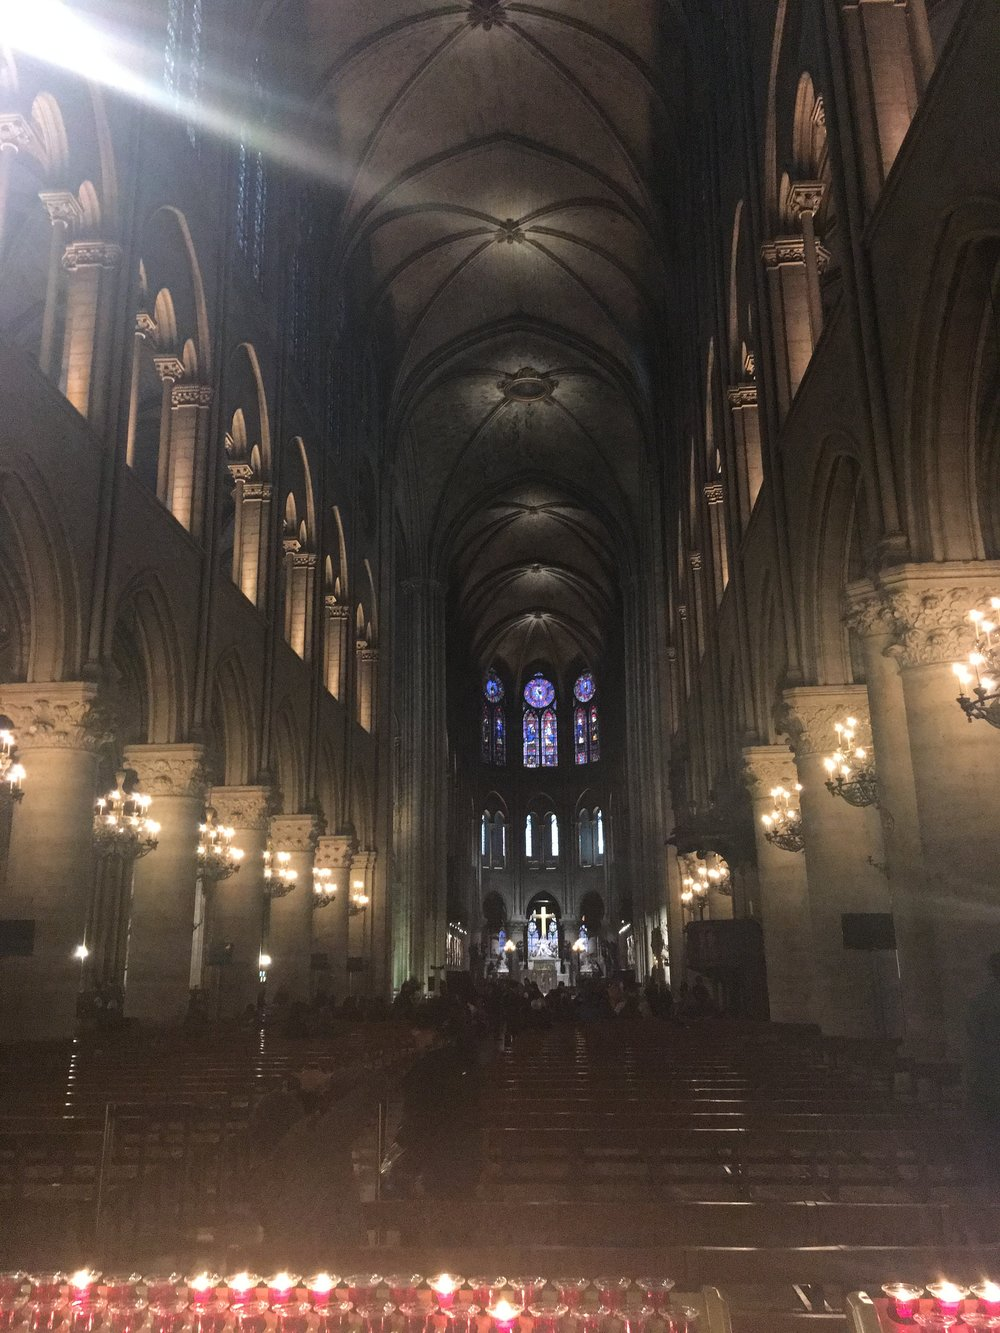 I love coming to Notre Dame to get some quiet time and reflect on things.